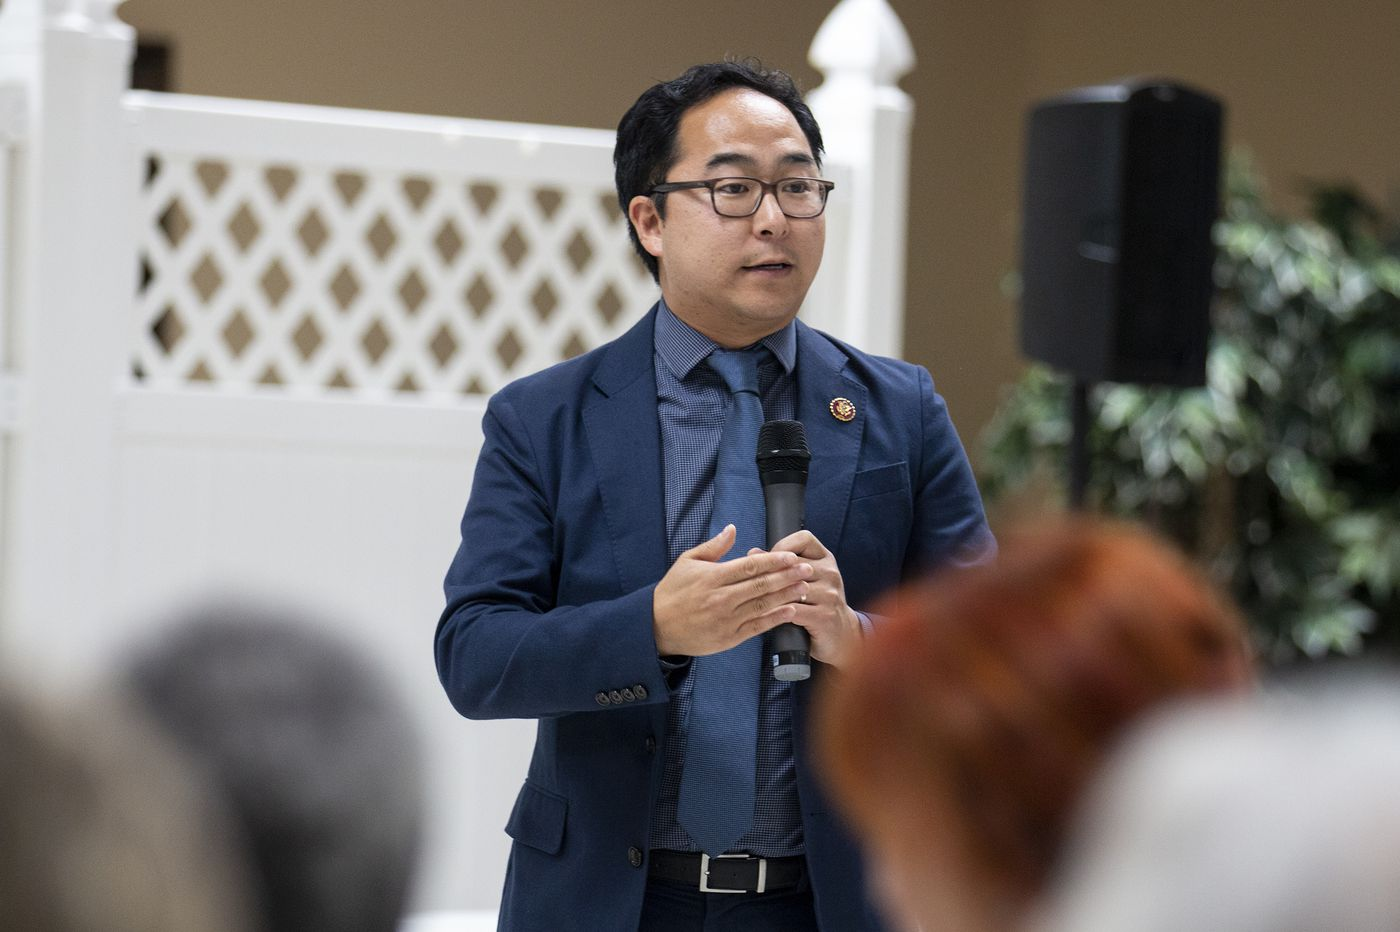 Constituents urge impeachment at U.S. Rep. Andy Kim's town hall meeting